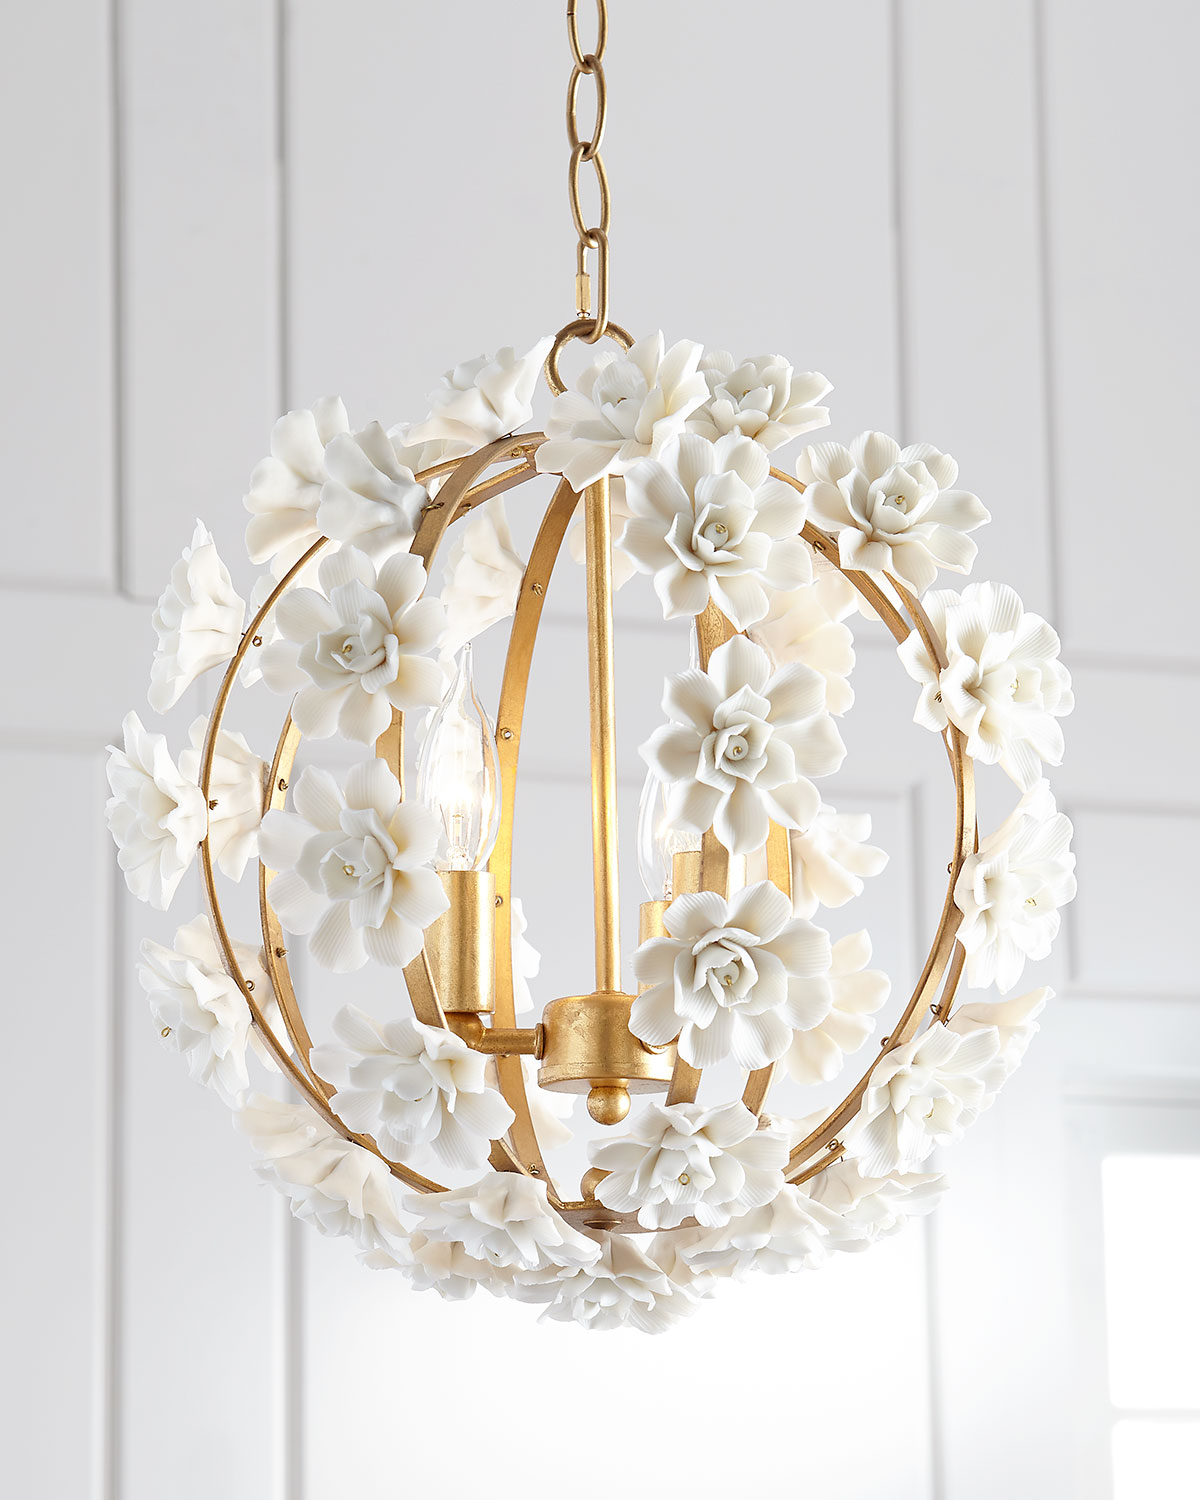 Gold light fixture neiman marcus quick look neiman marcus ceramic flower pendant light arubaitofo Gallery